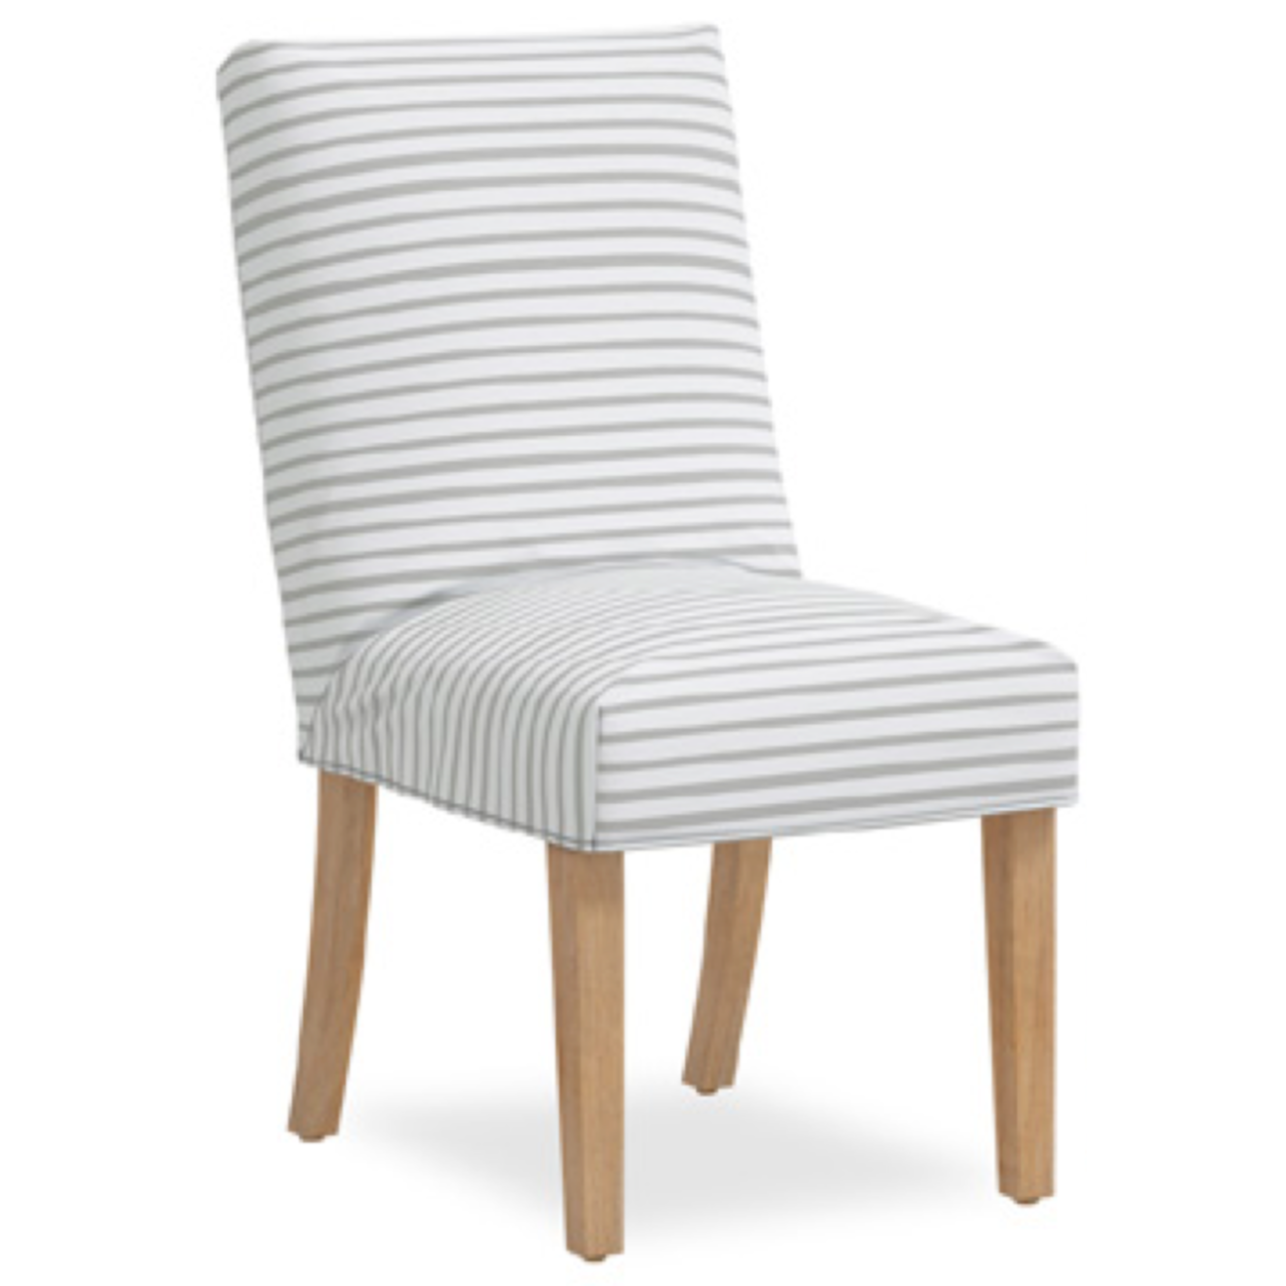 Jill Slipcover Dining Chair, Nautical Stripe Grey